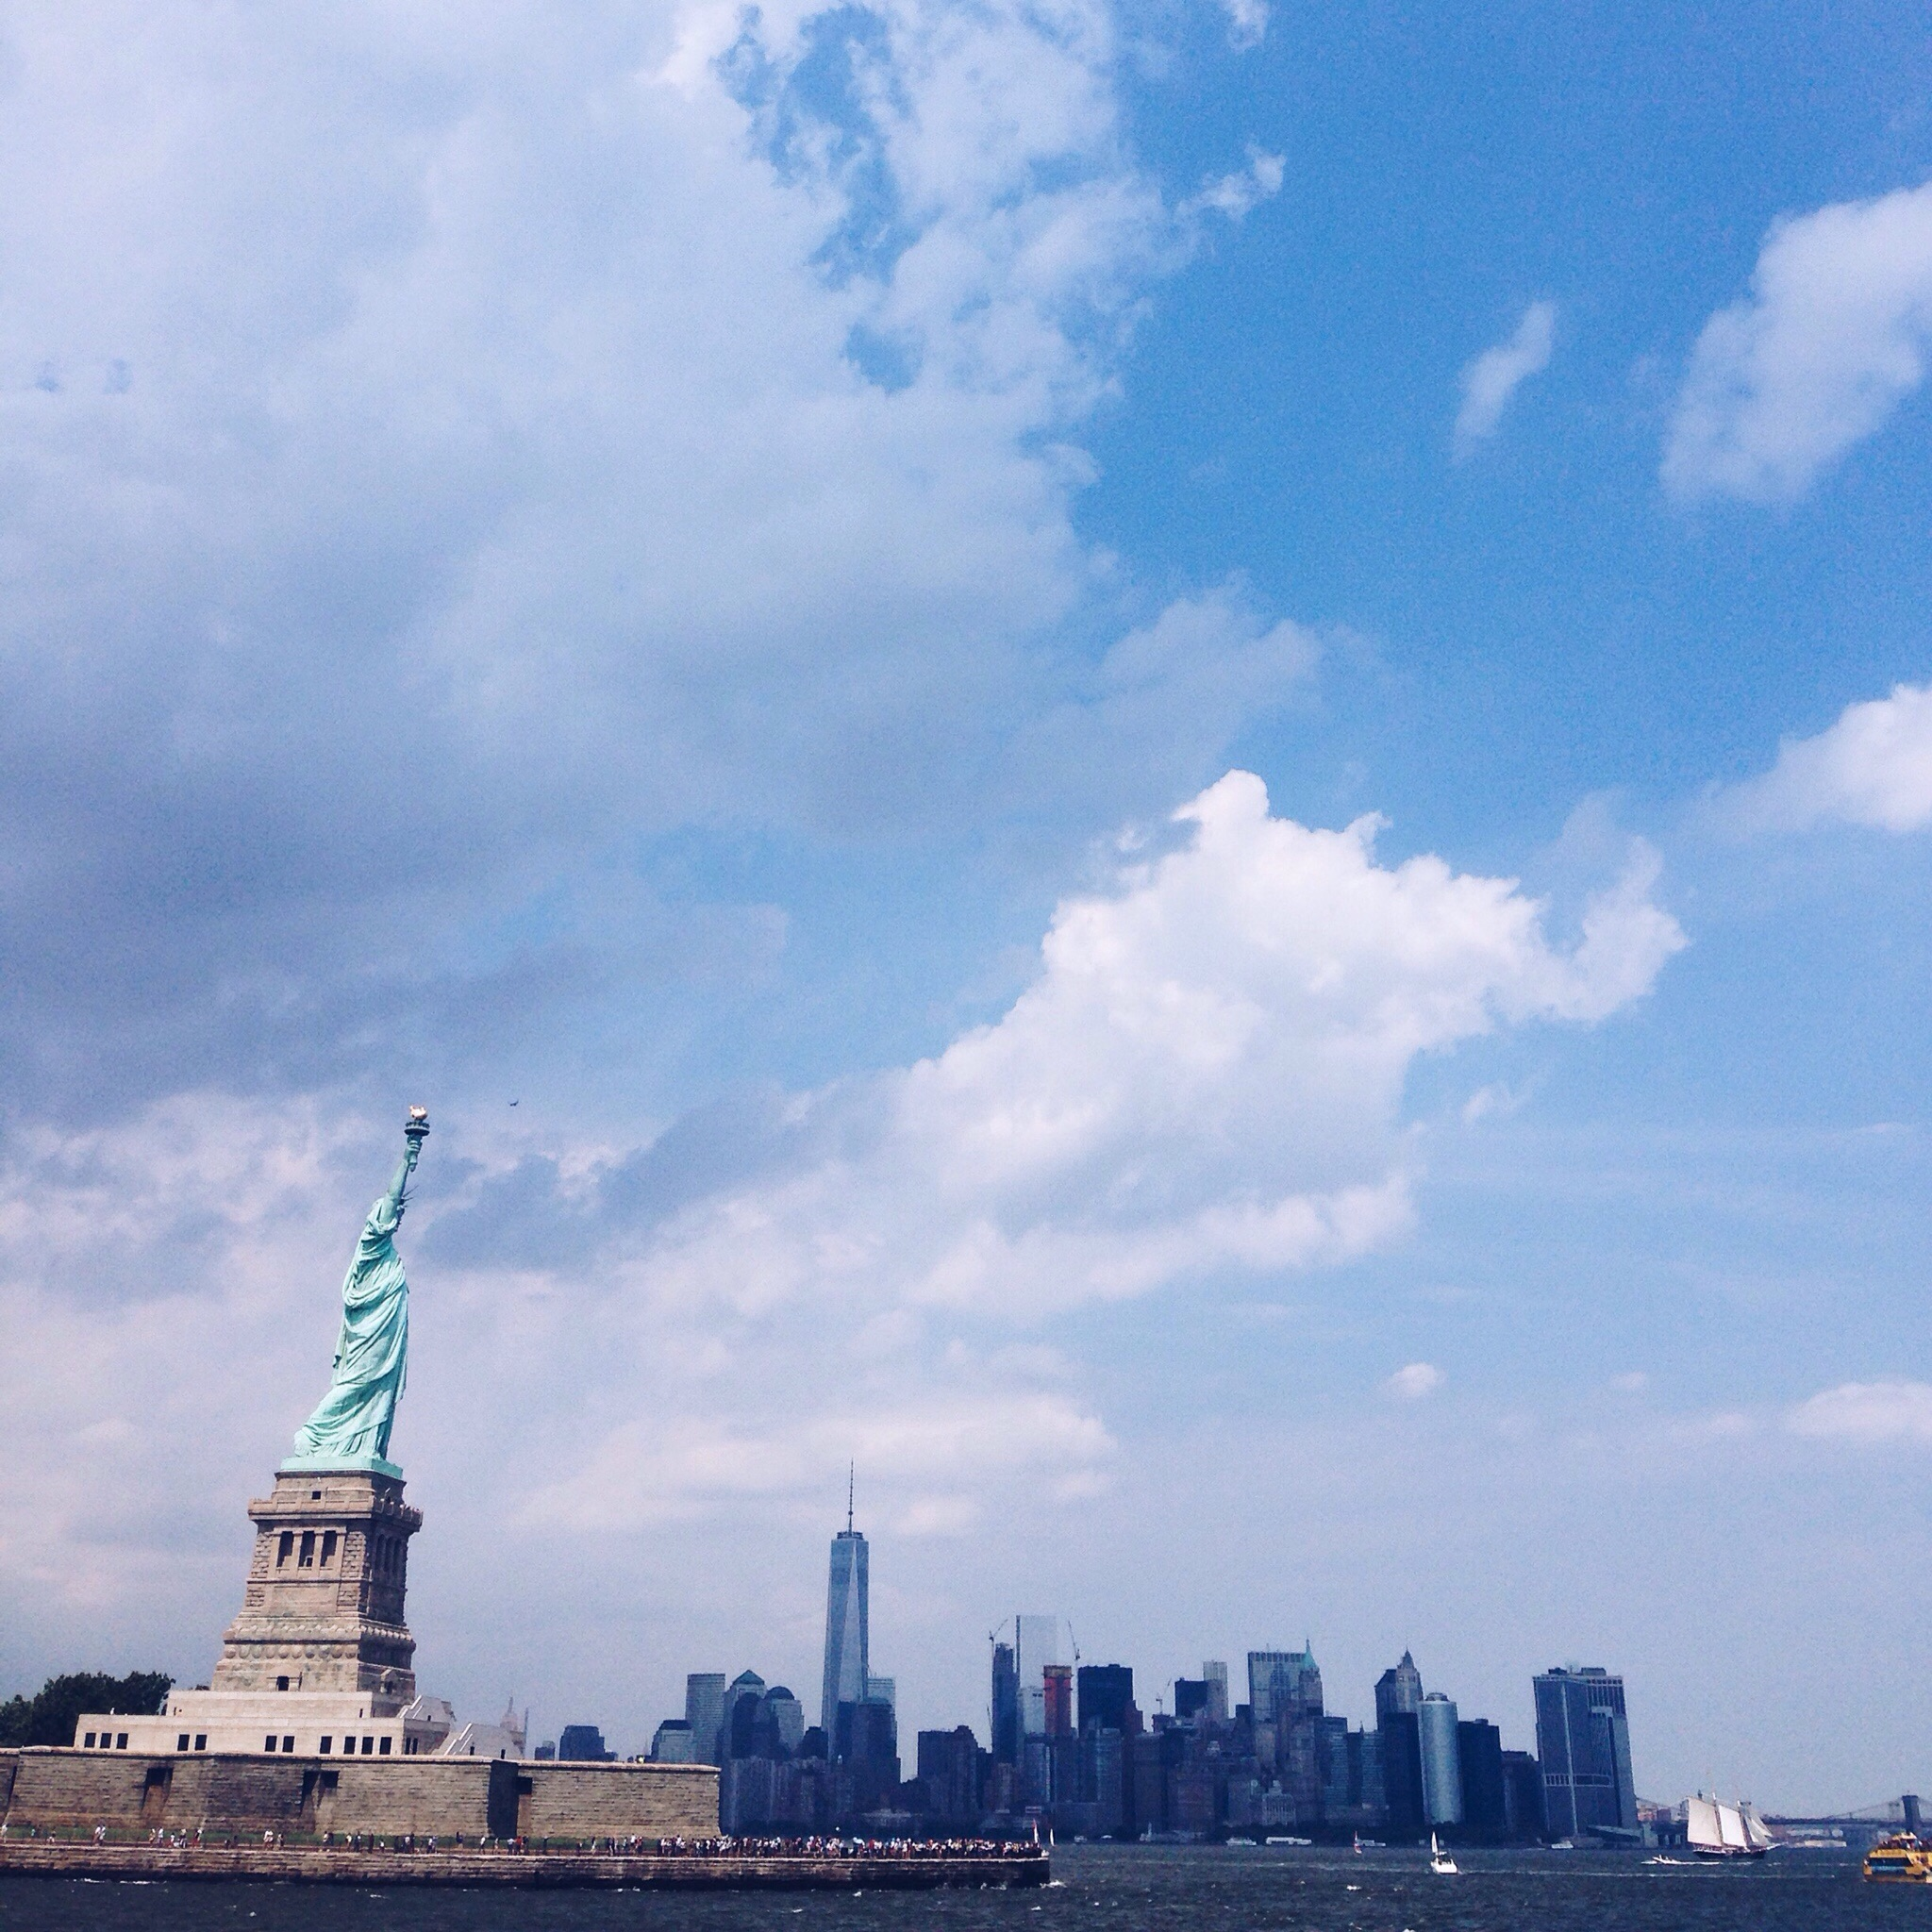 The Statue of Liberty is huge. HUGE.